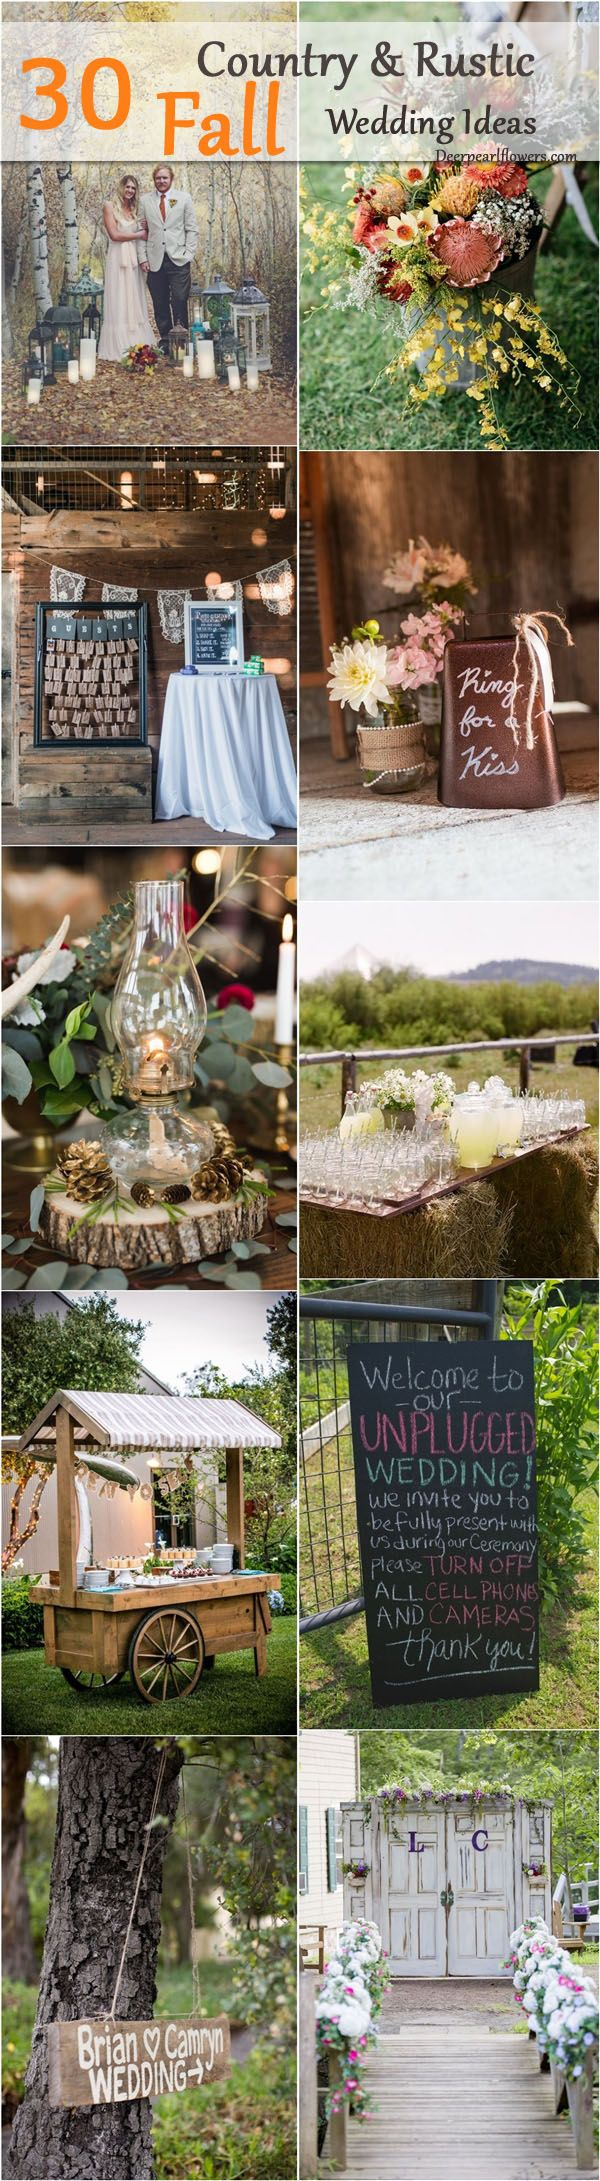 Rustic country outdoor fall wedding ideas / http://www.deerpearlflowers.com/country-rustic-fall-wedding-theme-ideas/2/